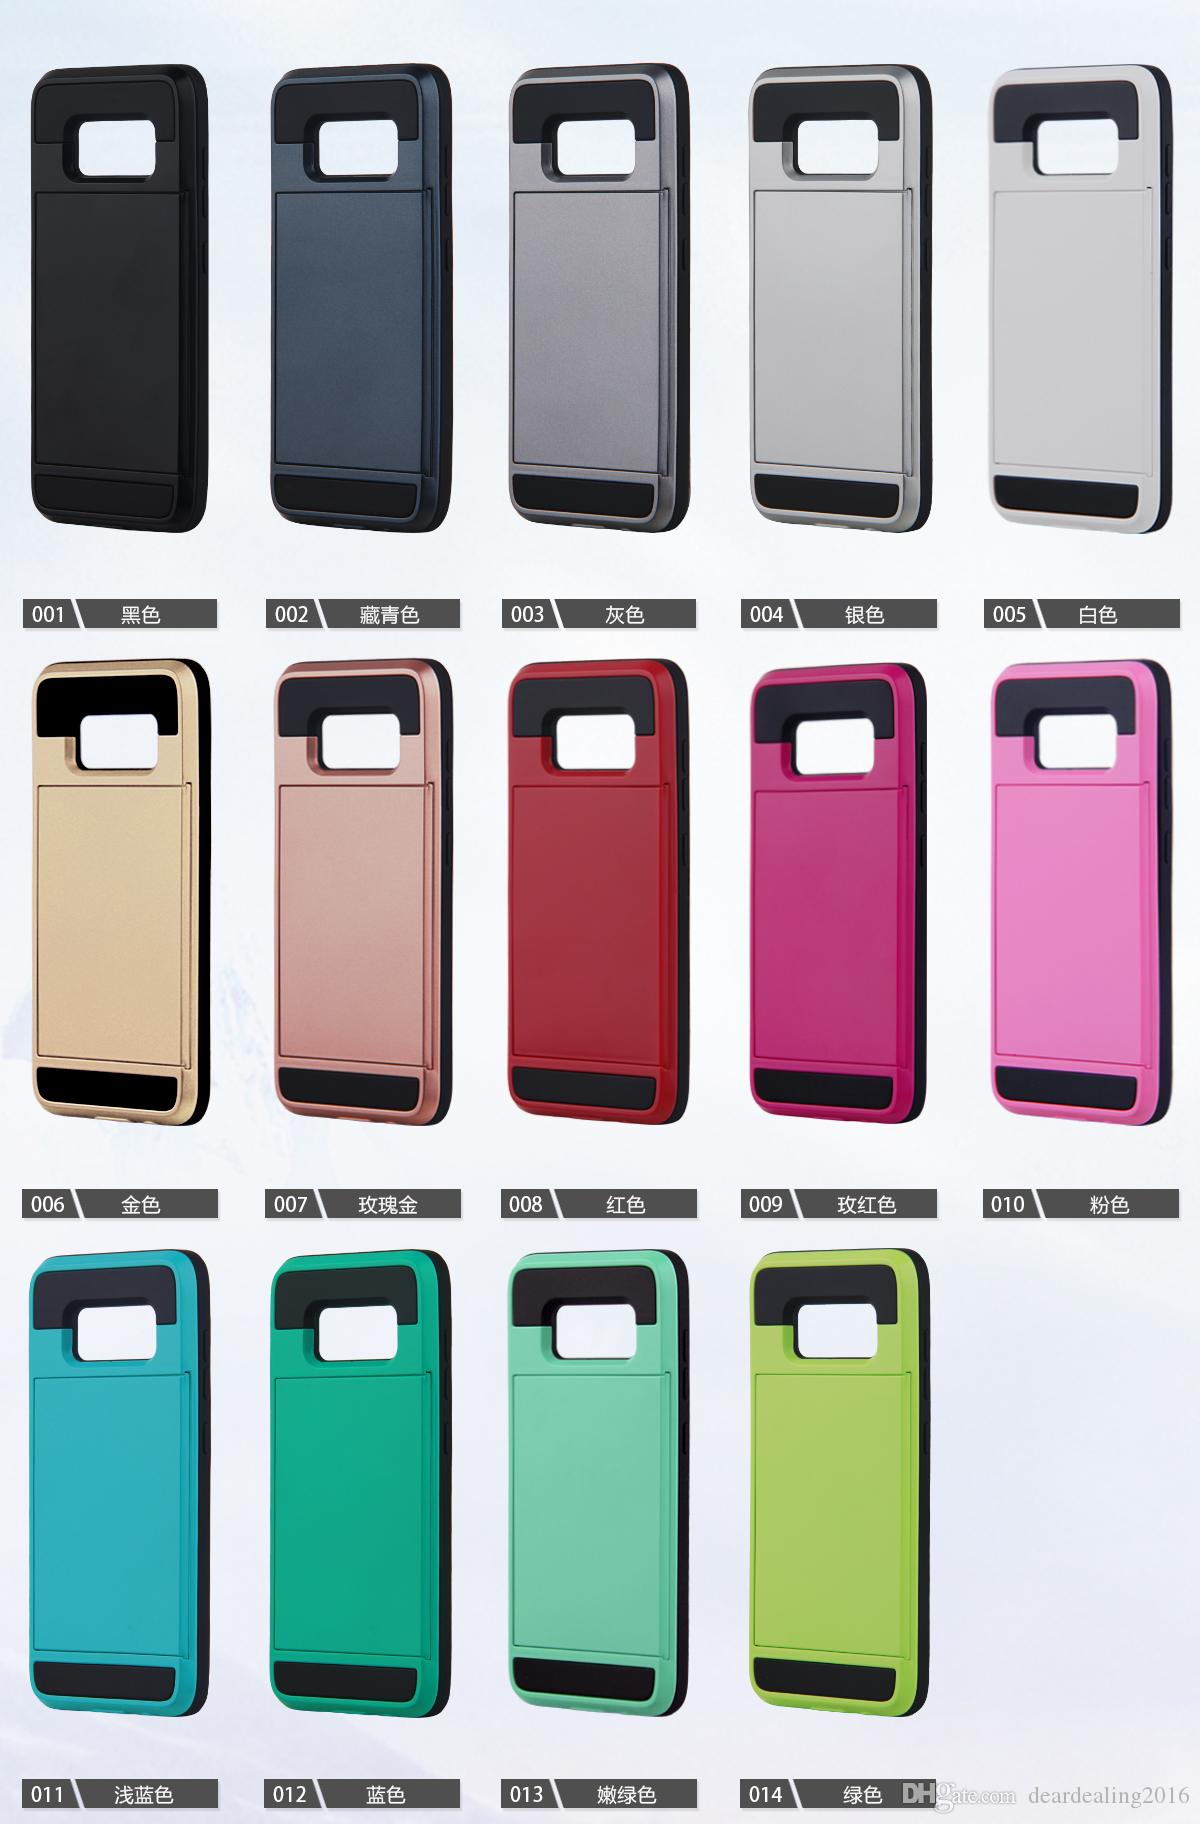 2017 Armor Cases Slide Card Case For Samsung S8 S8 Plus Soft Tpu Pc bo Back Cover For J5 J7 Prime J510 J710 2016 Cell Phone Case Mobile Phone Cases From